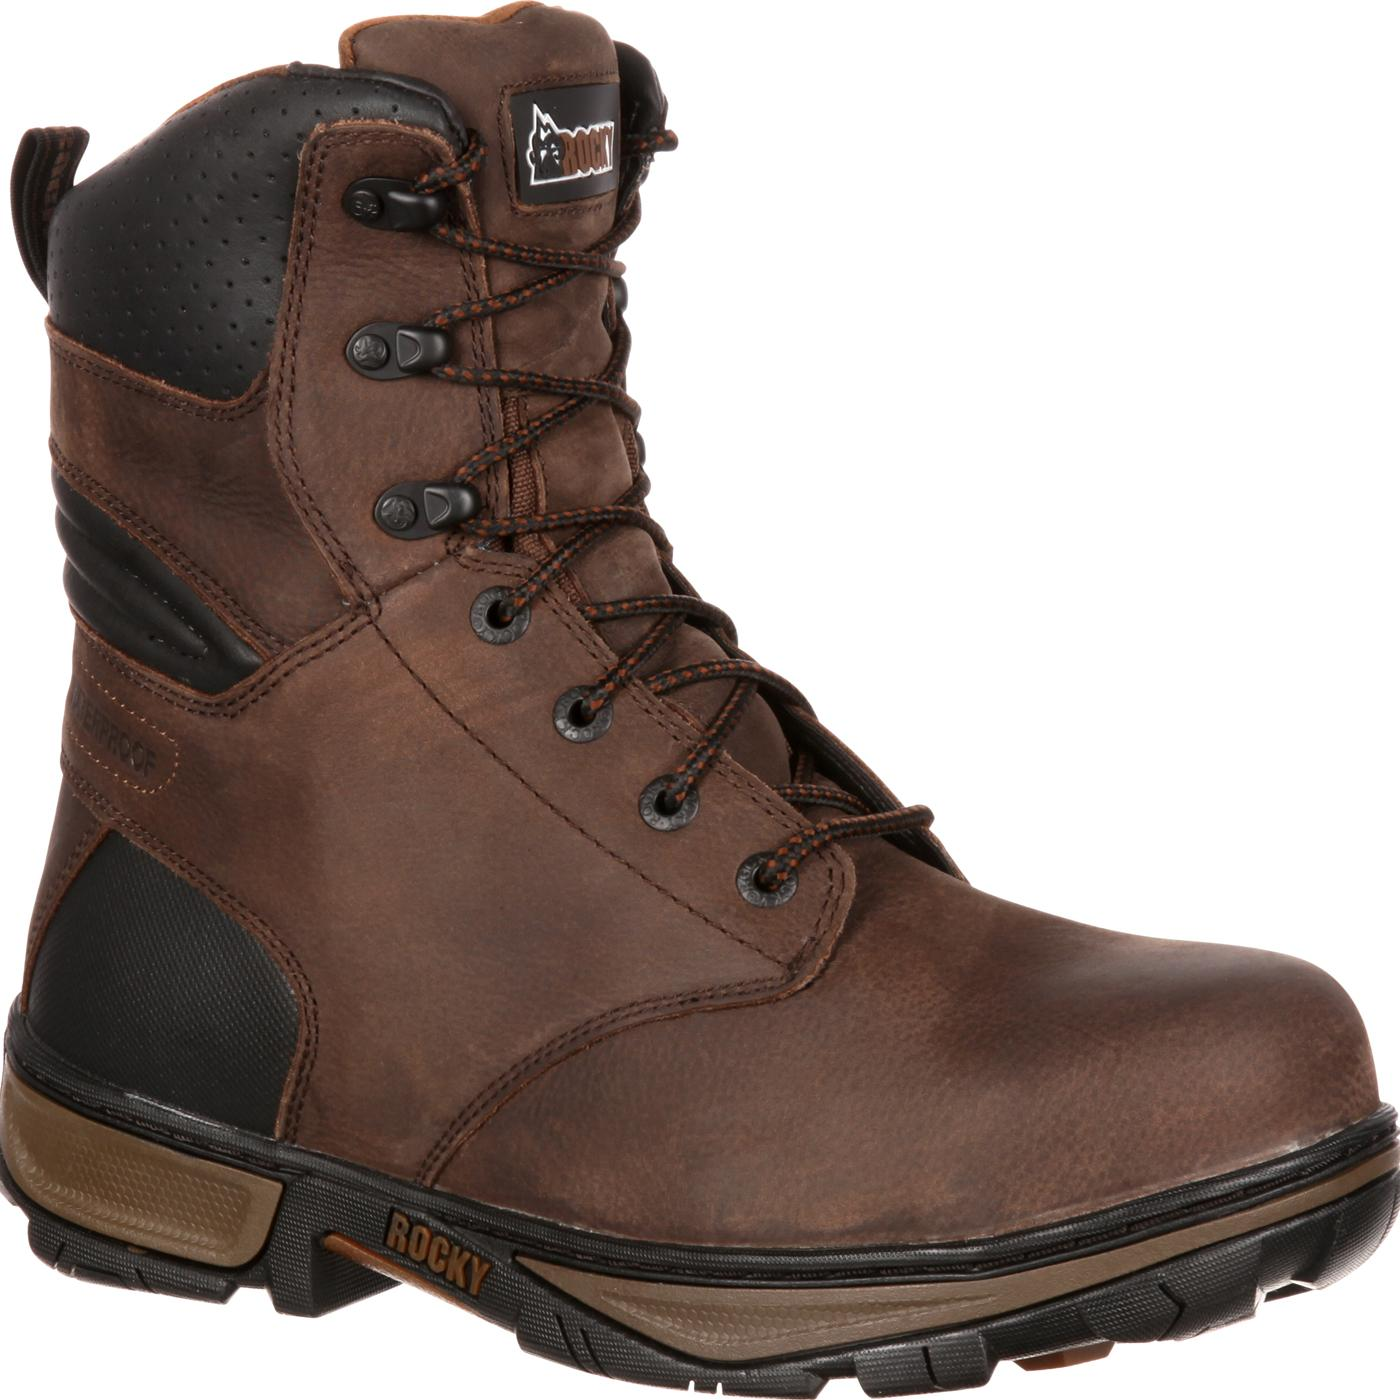 Rocky Forge Men s Brown Steel Toe Waterproof Work Boots 939baf9fc692